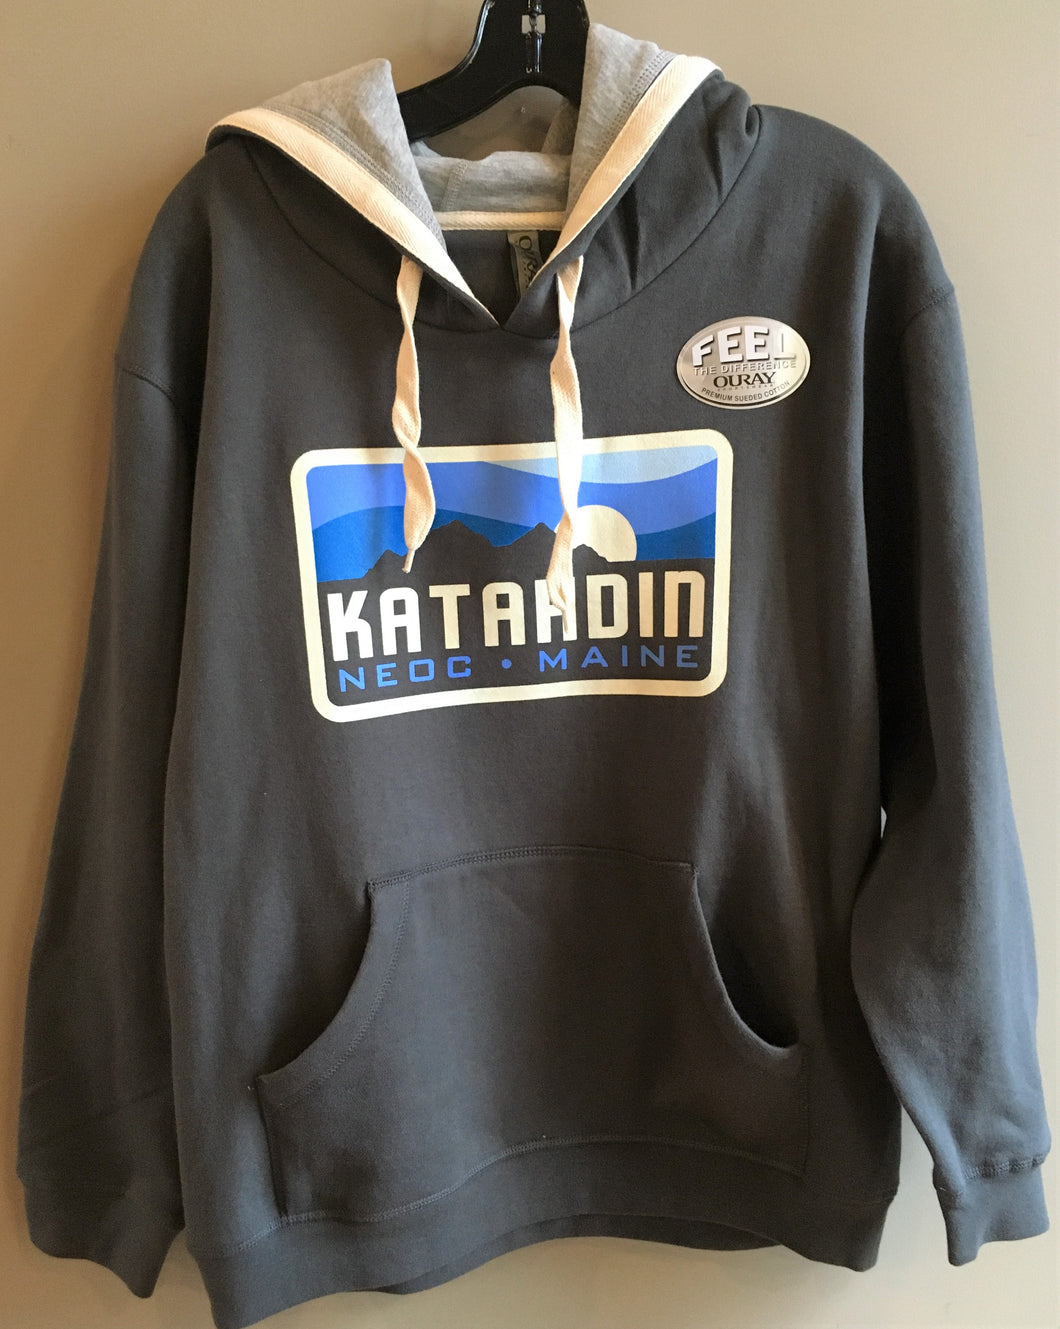 Katahdin Maine Hoodie - Adult Sizes Only